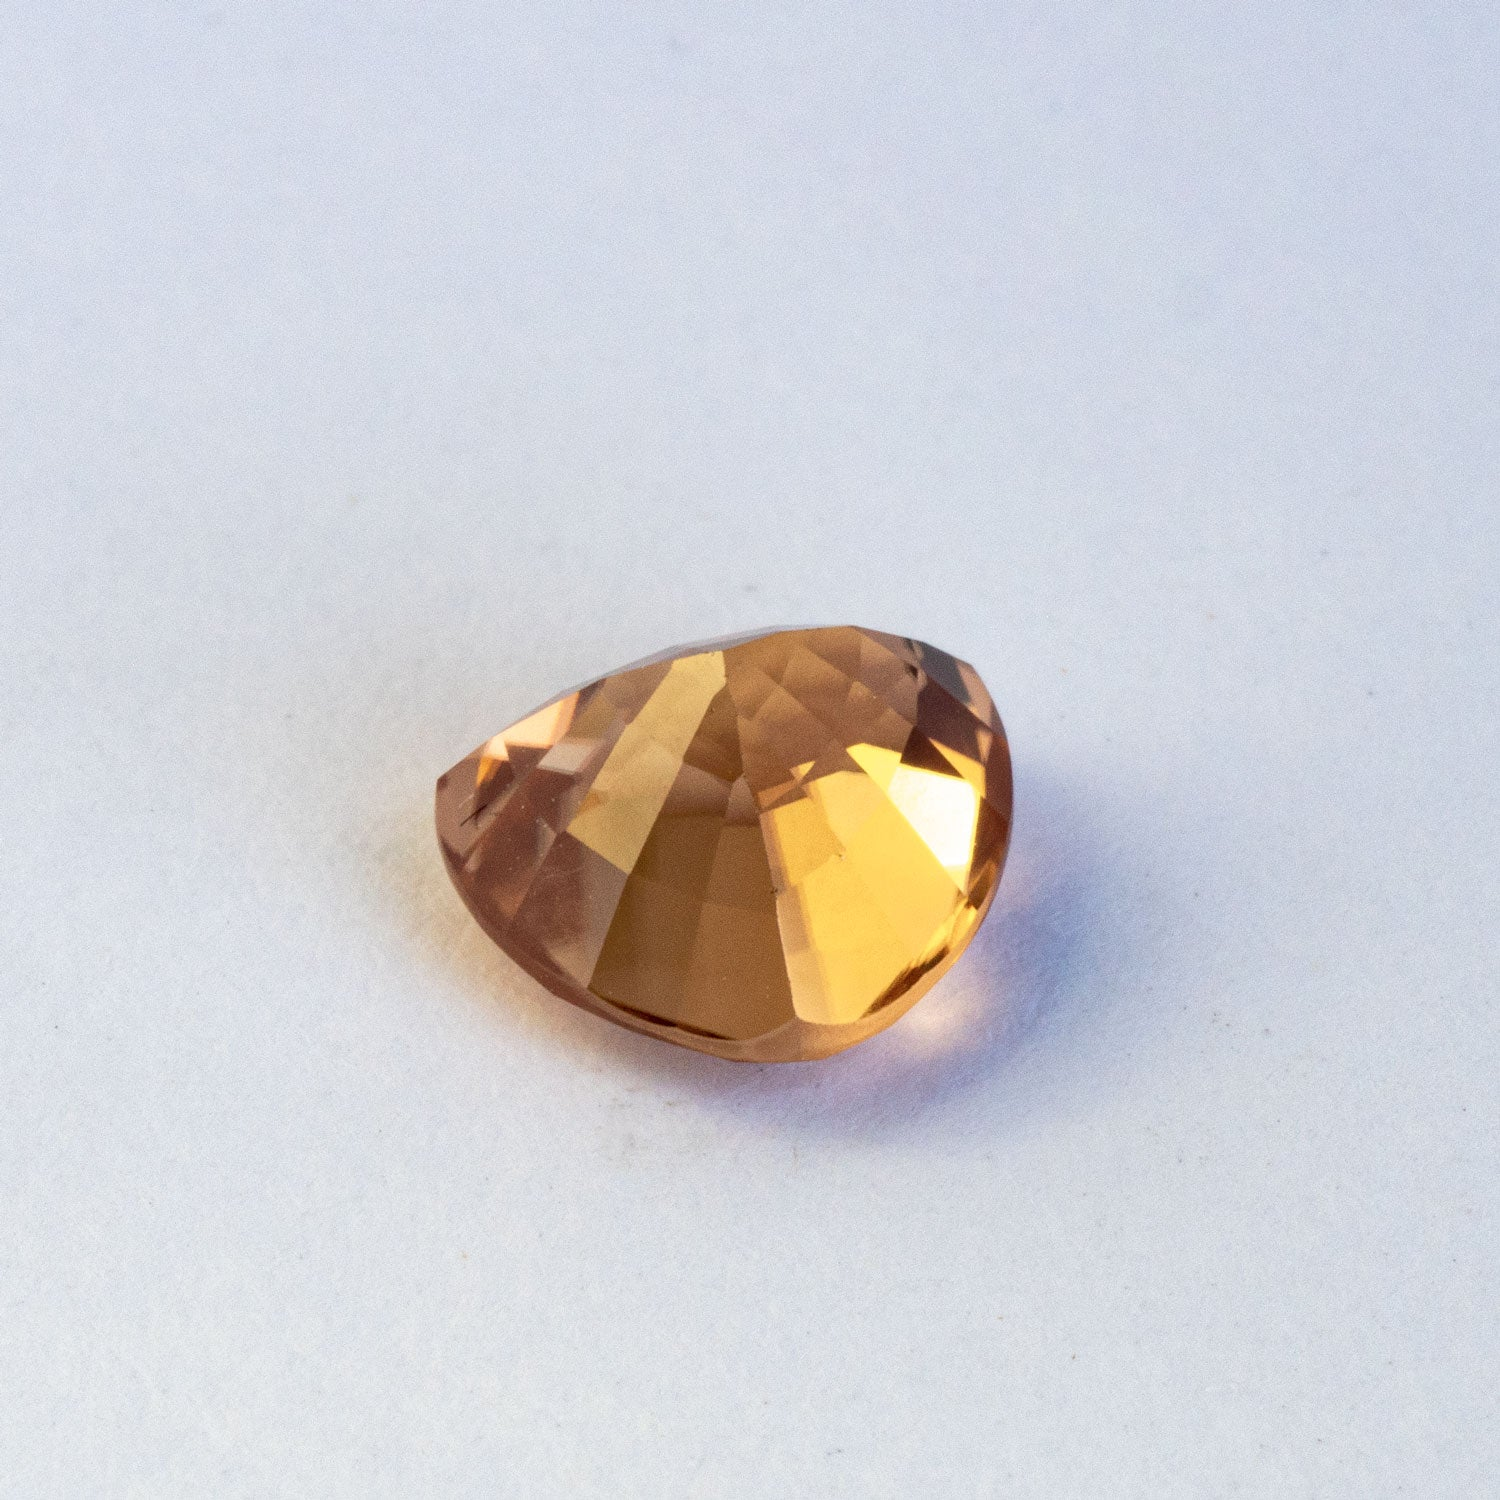 This stunning natural zircon has fantastic sparkle and beautiful golden hue with an ever so slight hint of peach